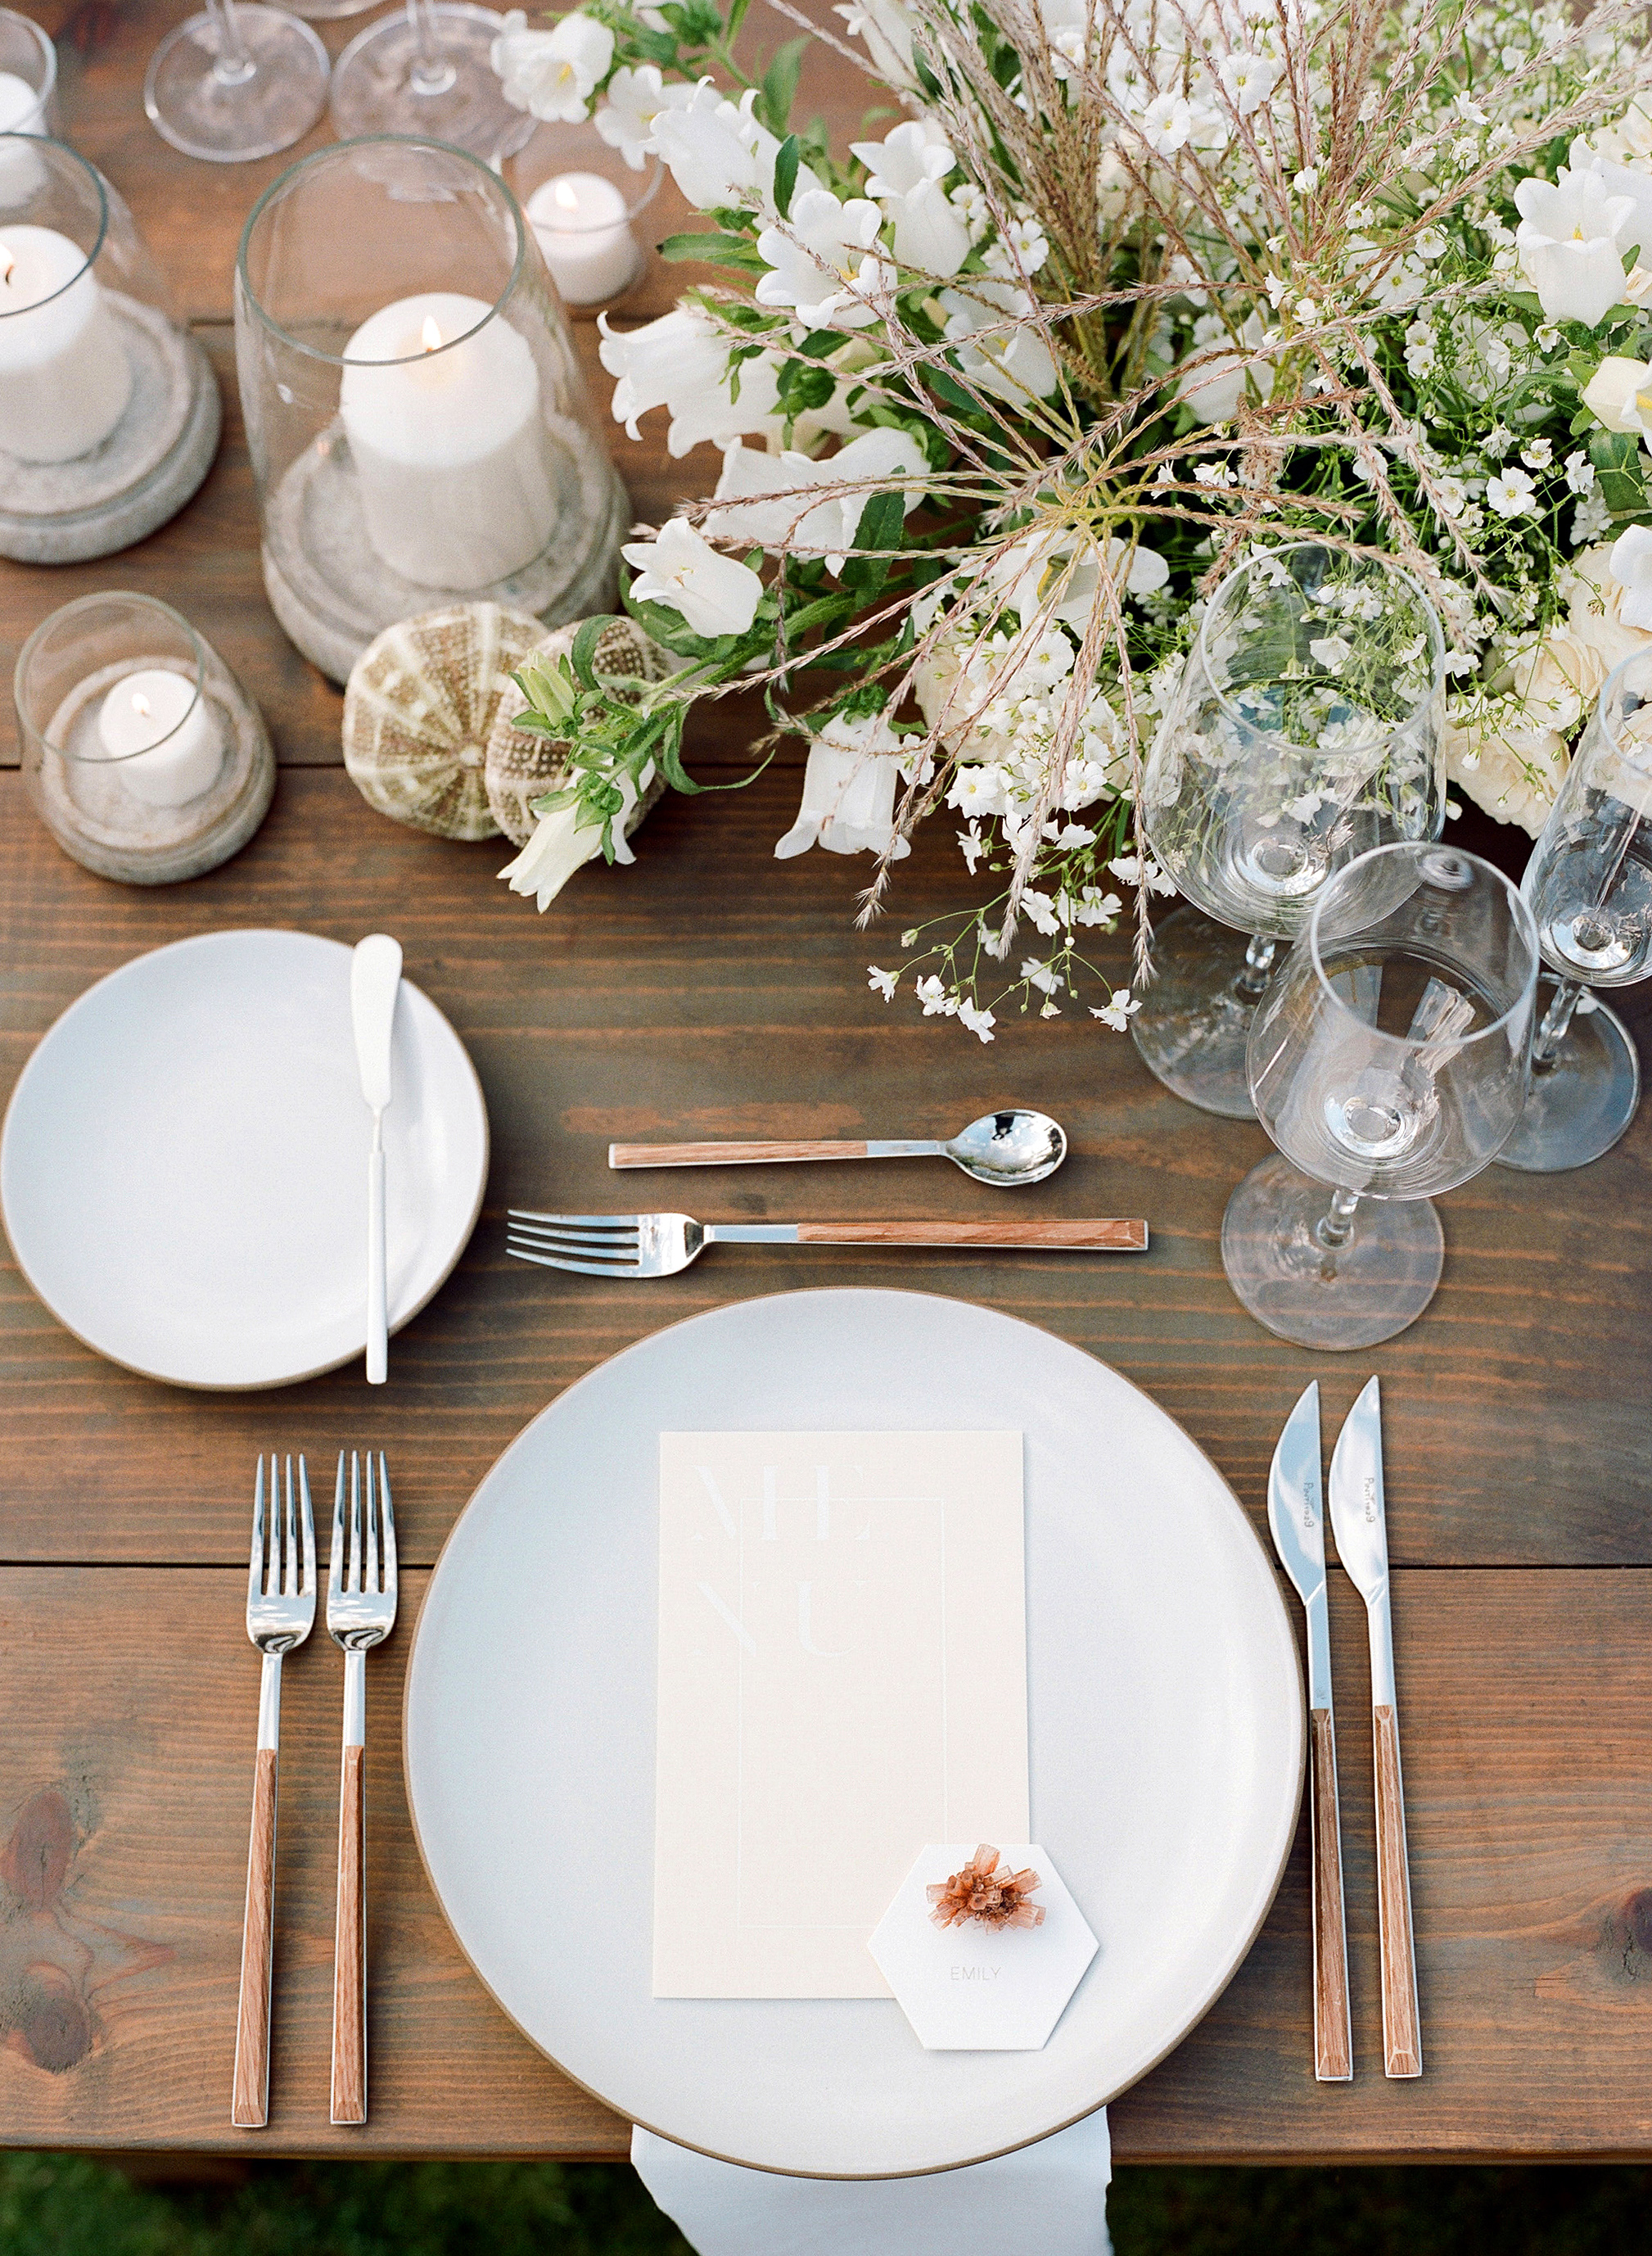 alex drew california wedding place setting on table with centerpiece